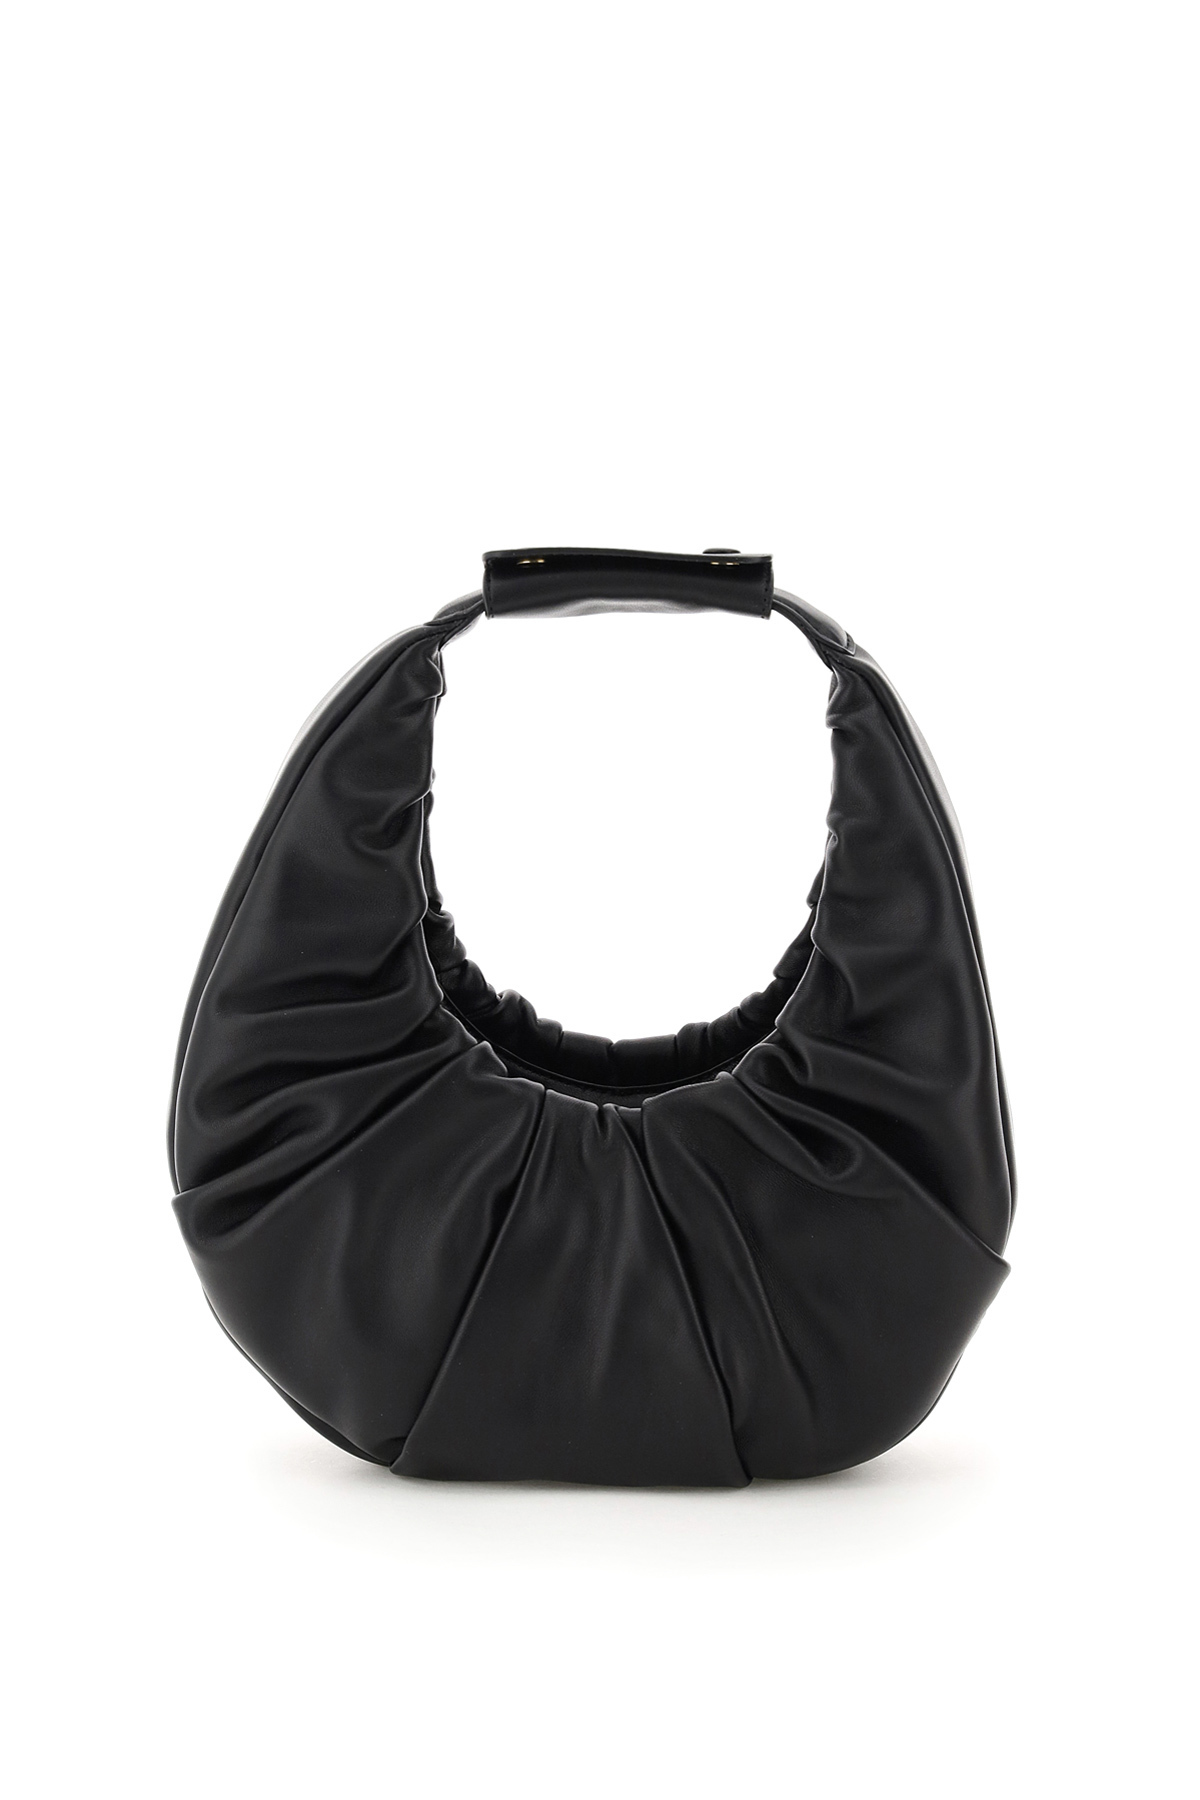 Staud SOFT MOON HOBO BAG